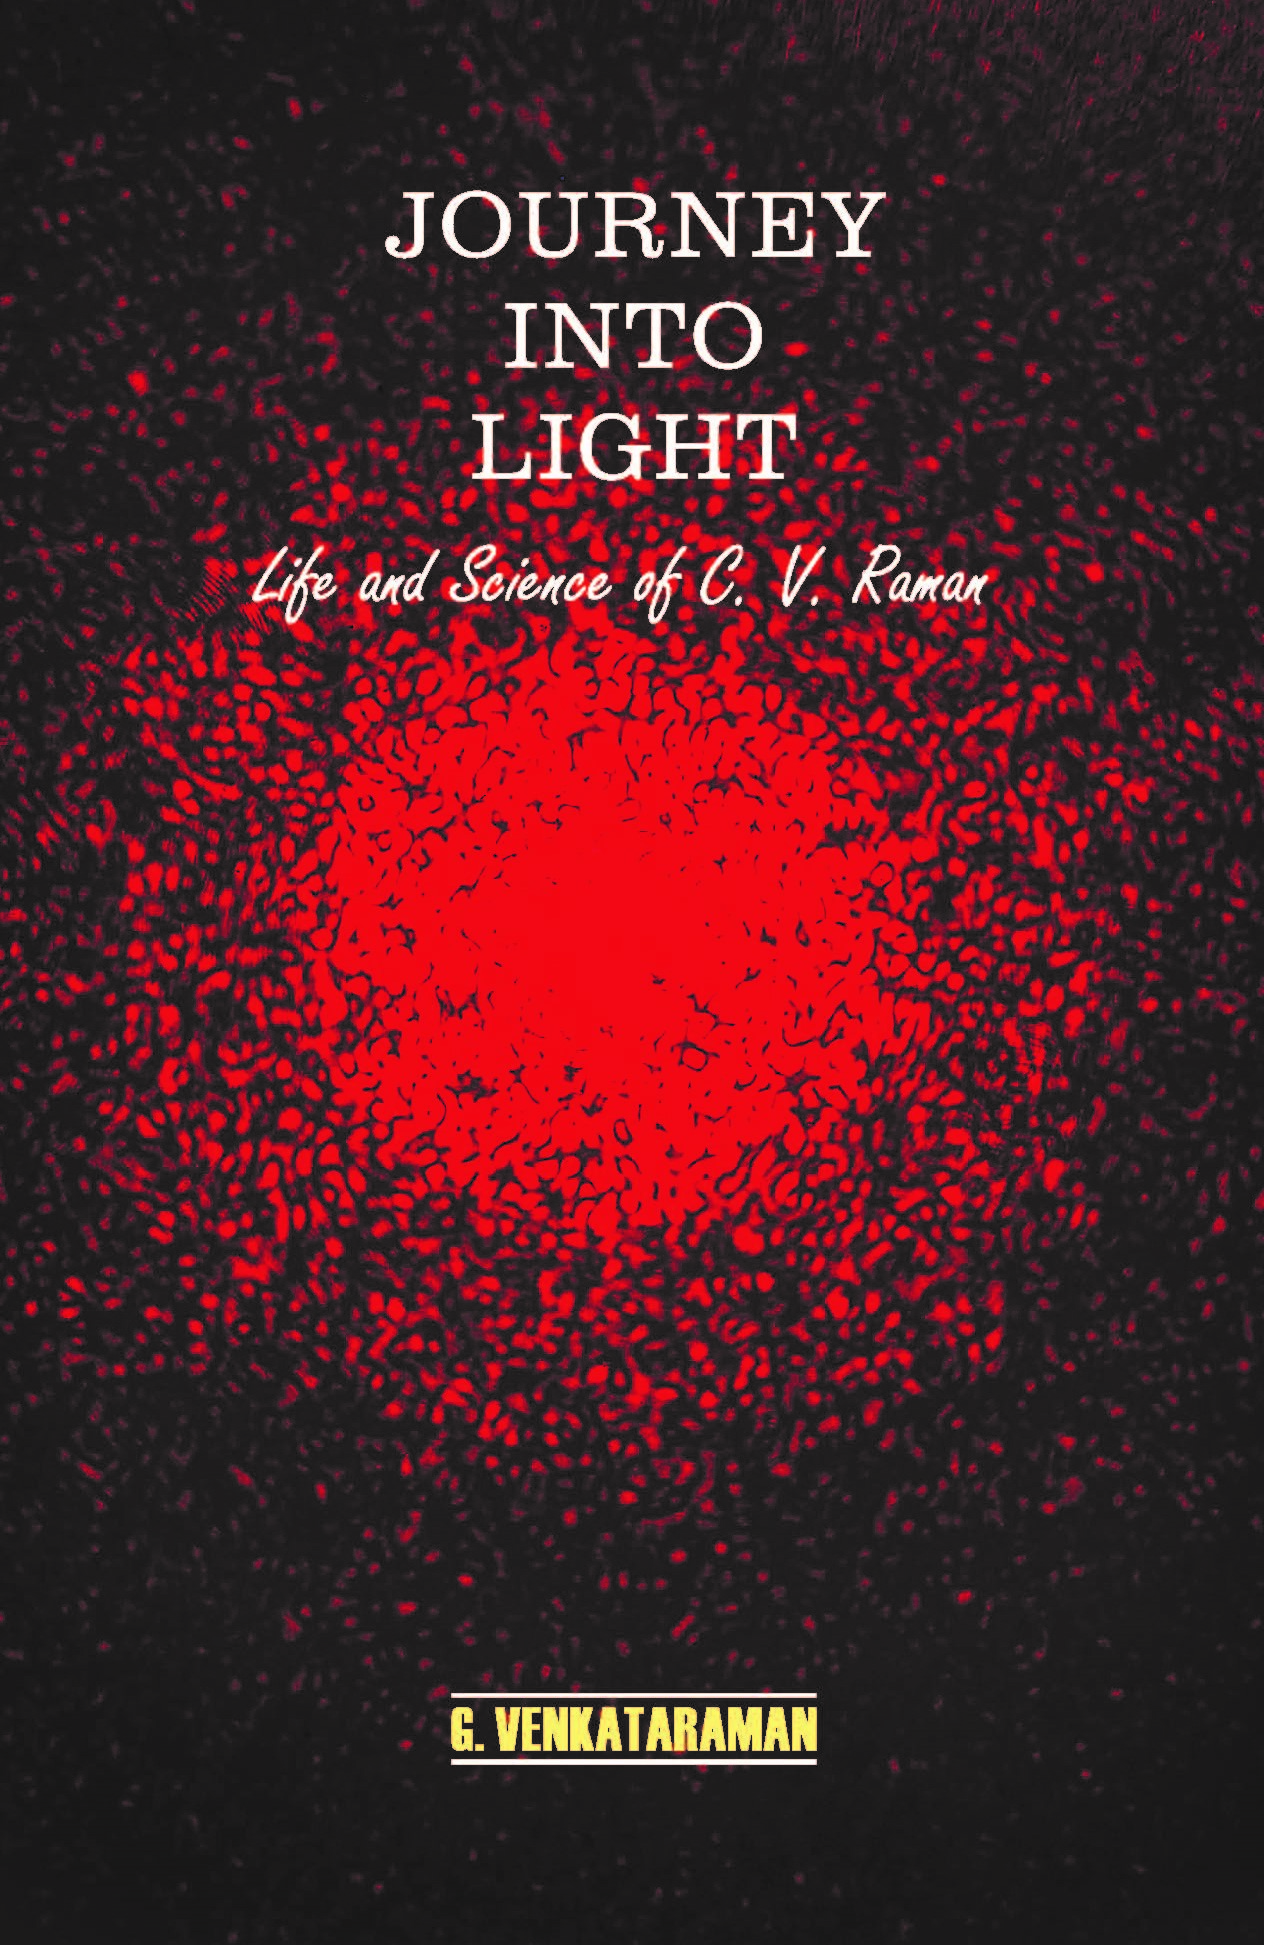 JOURNEY INTO LIGHT - life and science of C.V. Raman